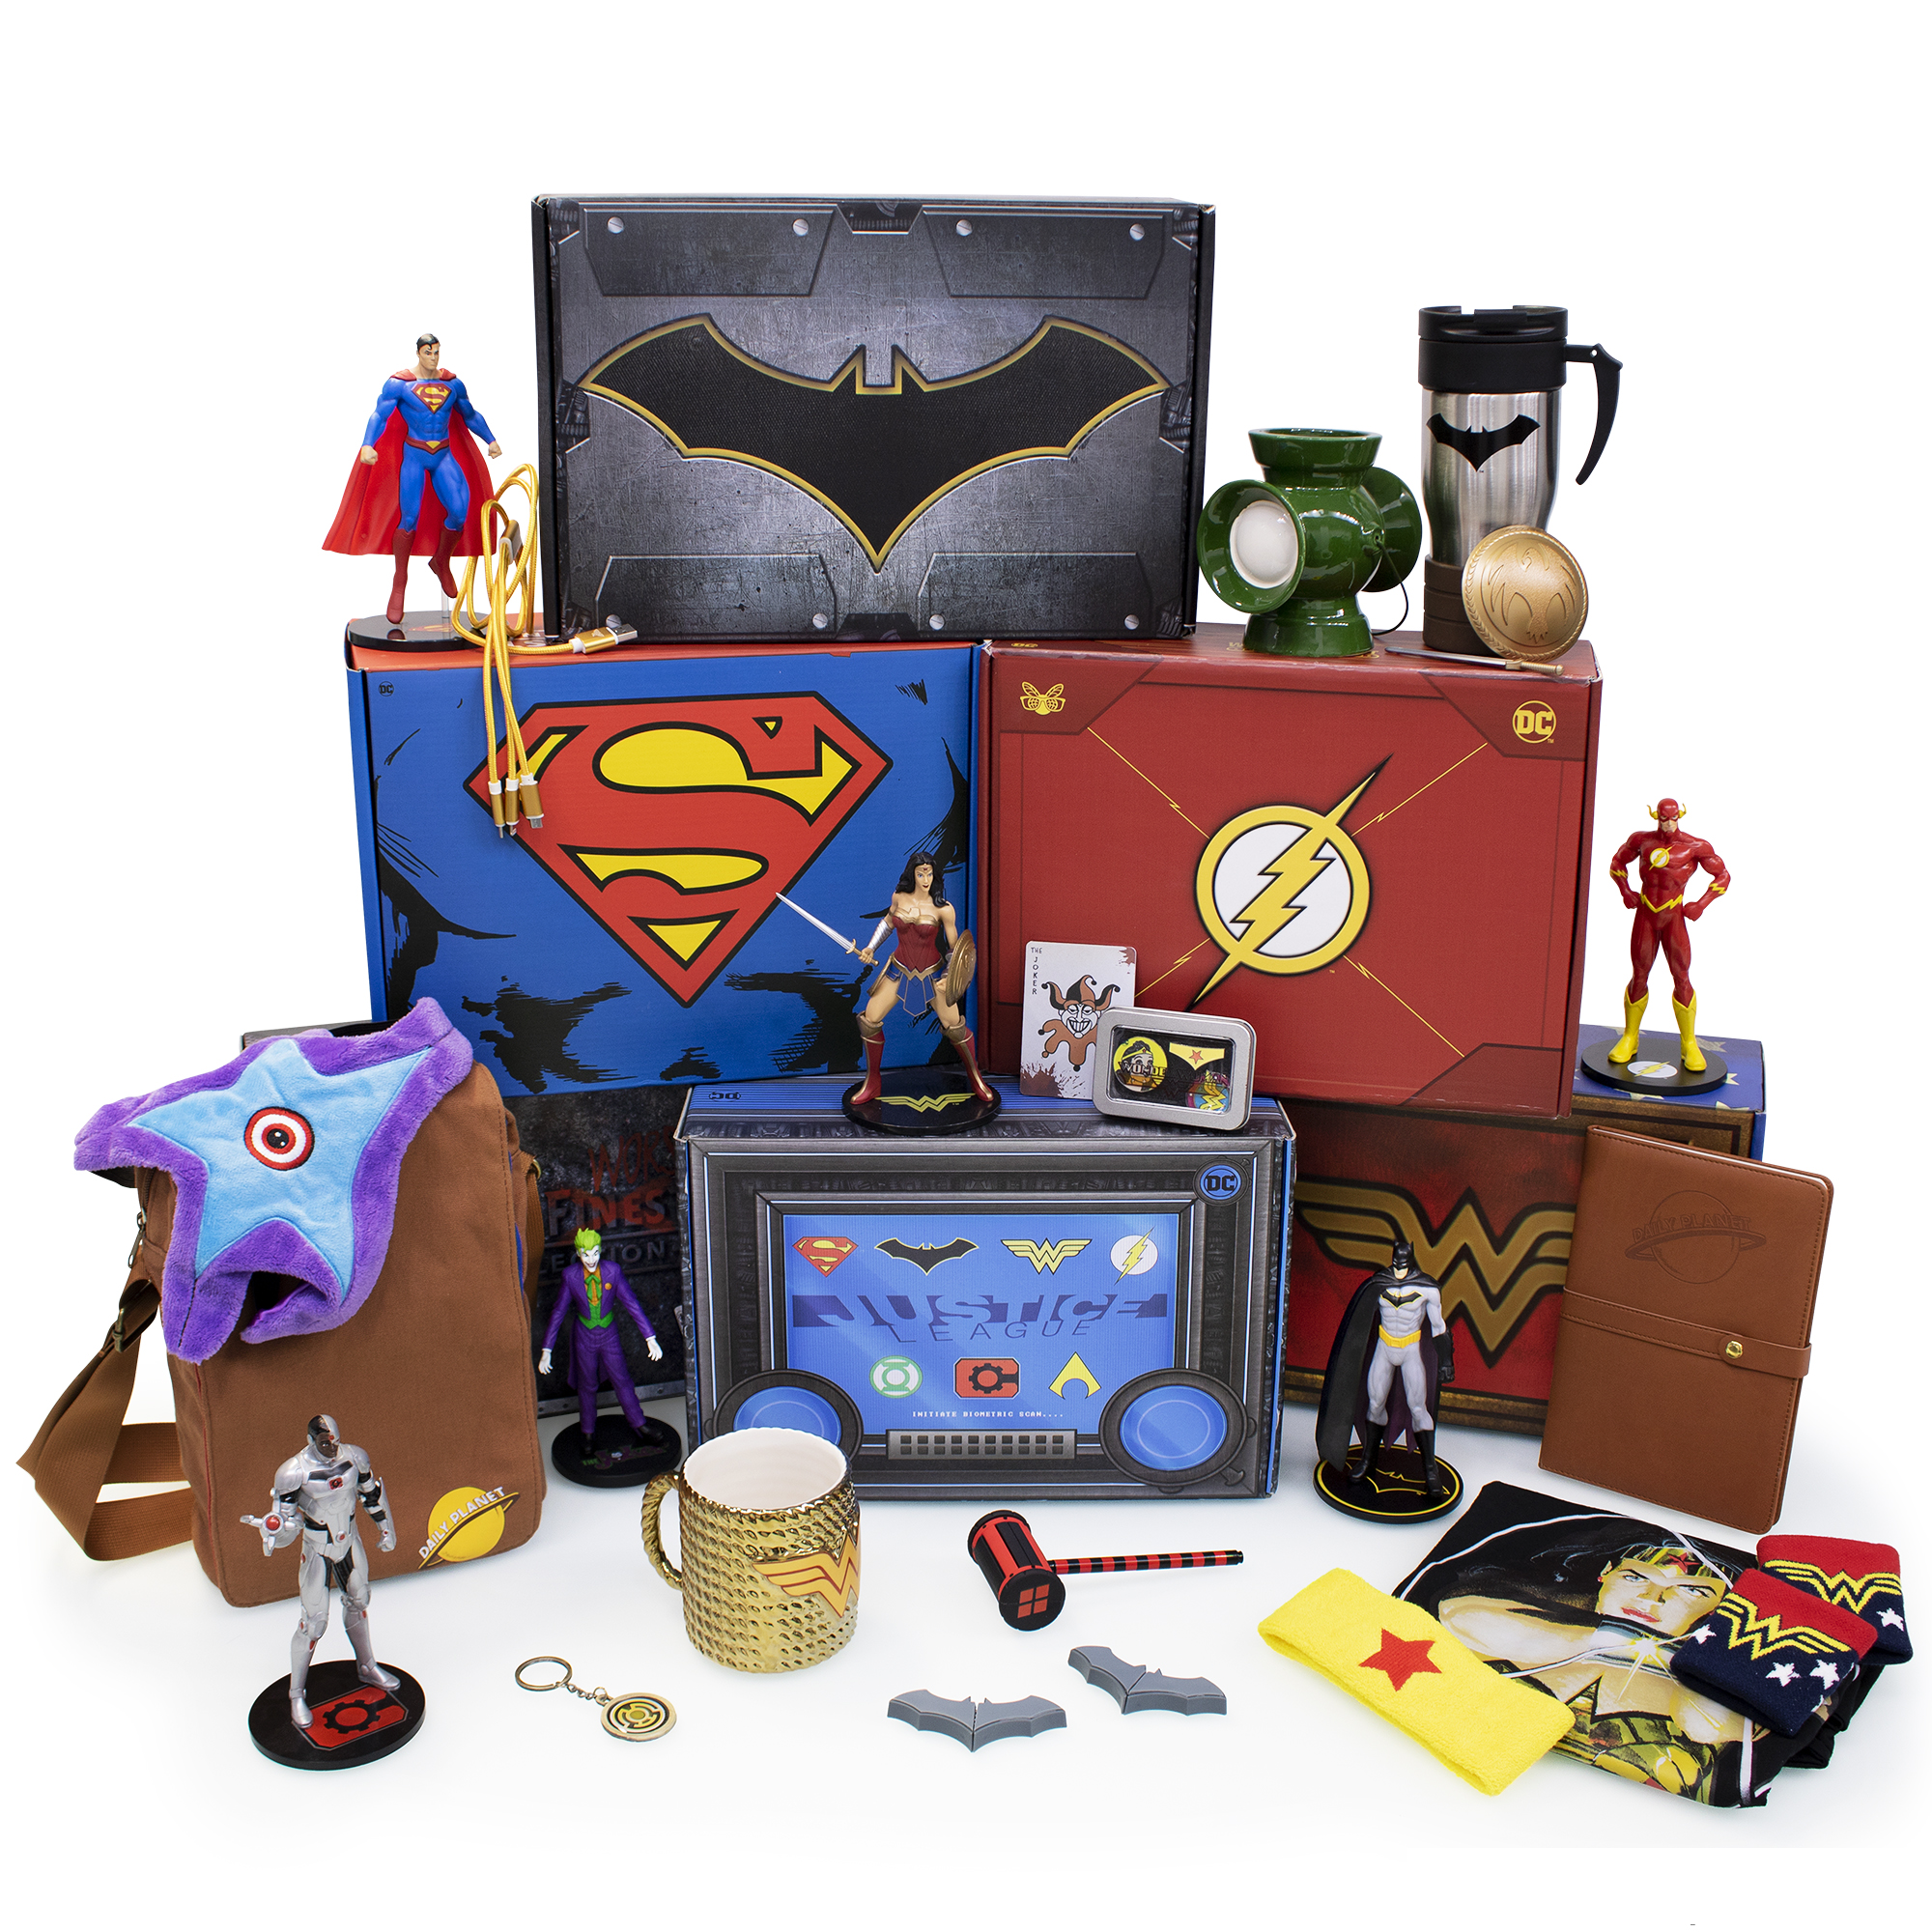 - World's Finest Collection Box -The Officially Licensed DC Comics Mystery Gift Subscription Box